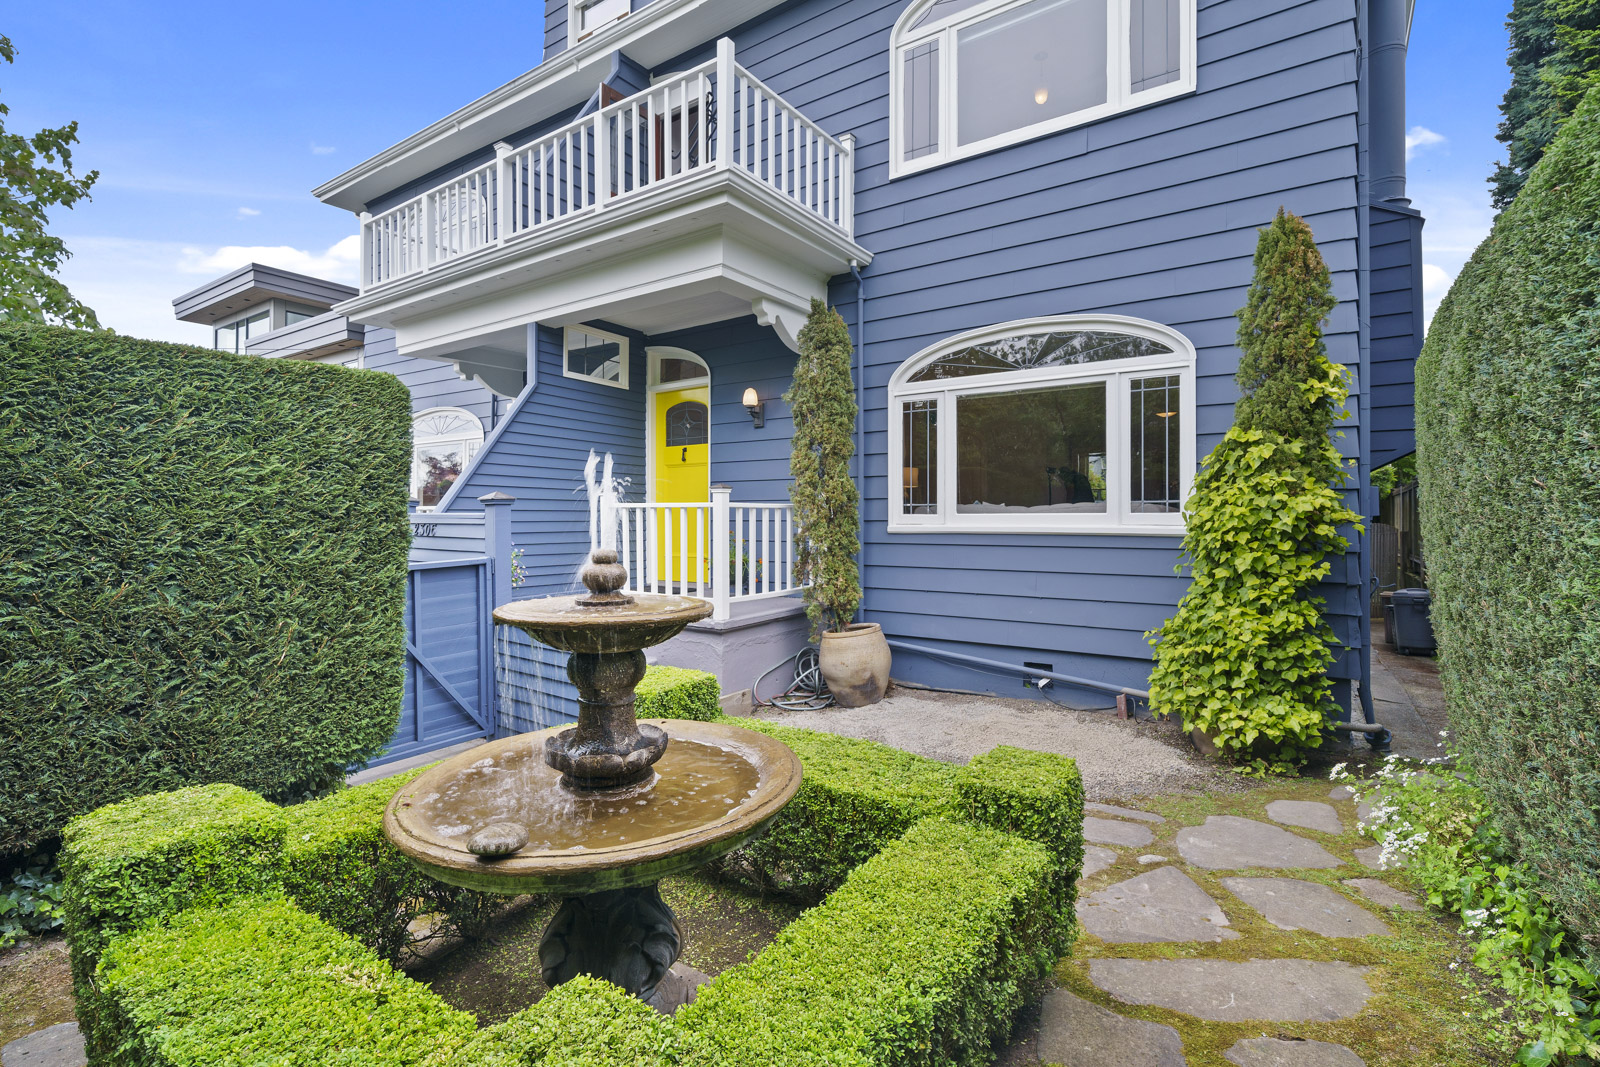 San Francisco Style Townhouse | 2306 11th Ave E Seattle, WA 98102